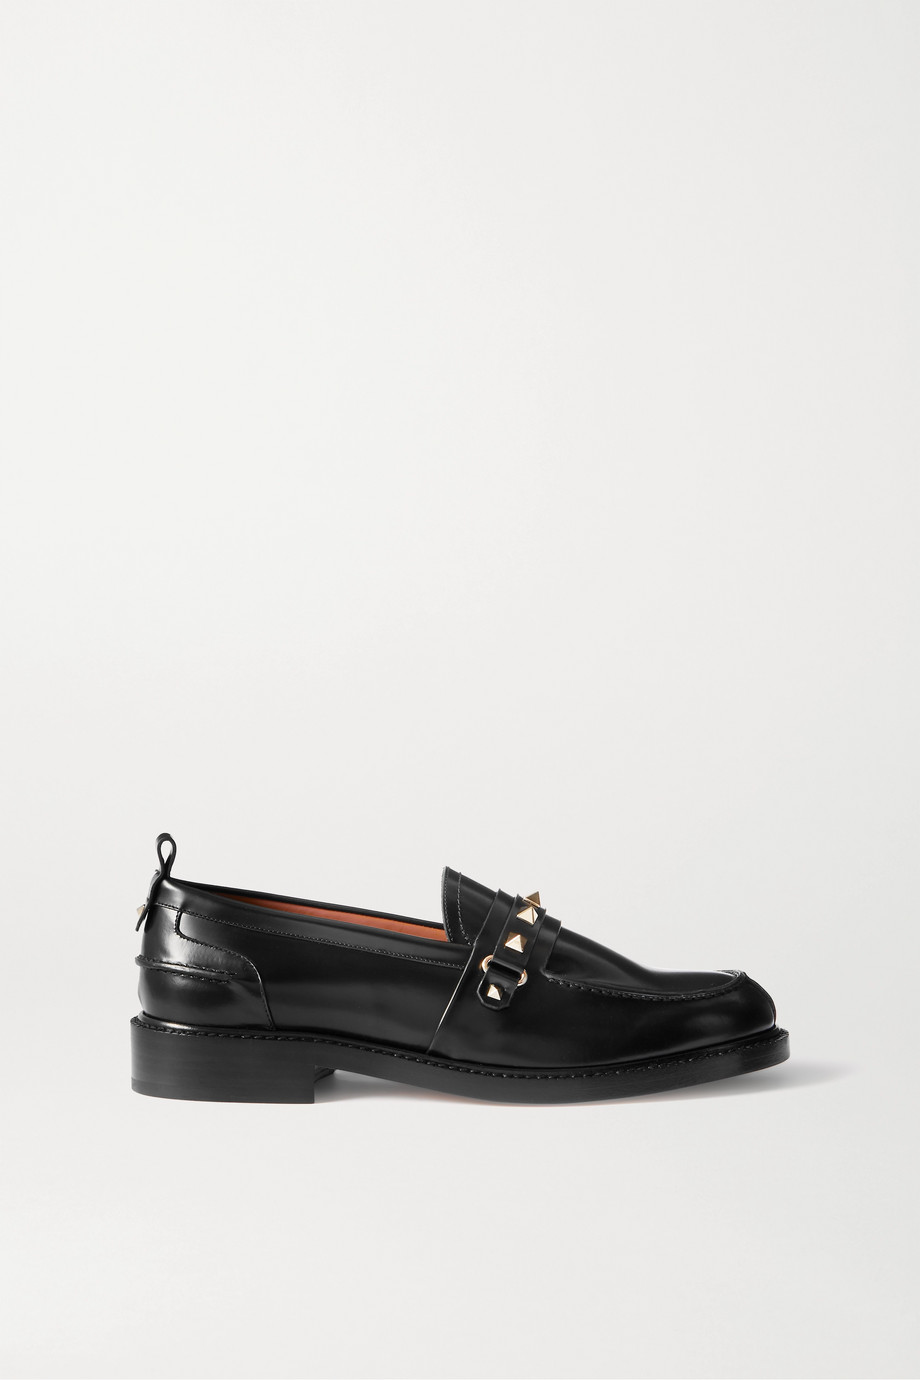 VALENTINO Valentino Garavani Rockstud glossed-leather loafers